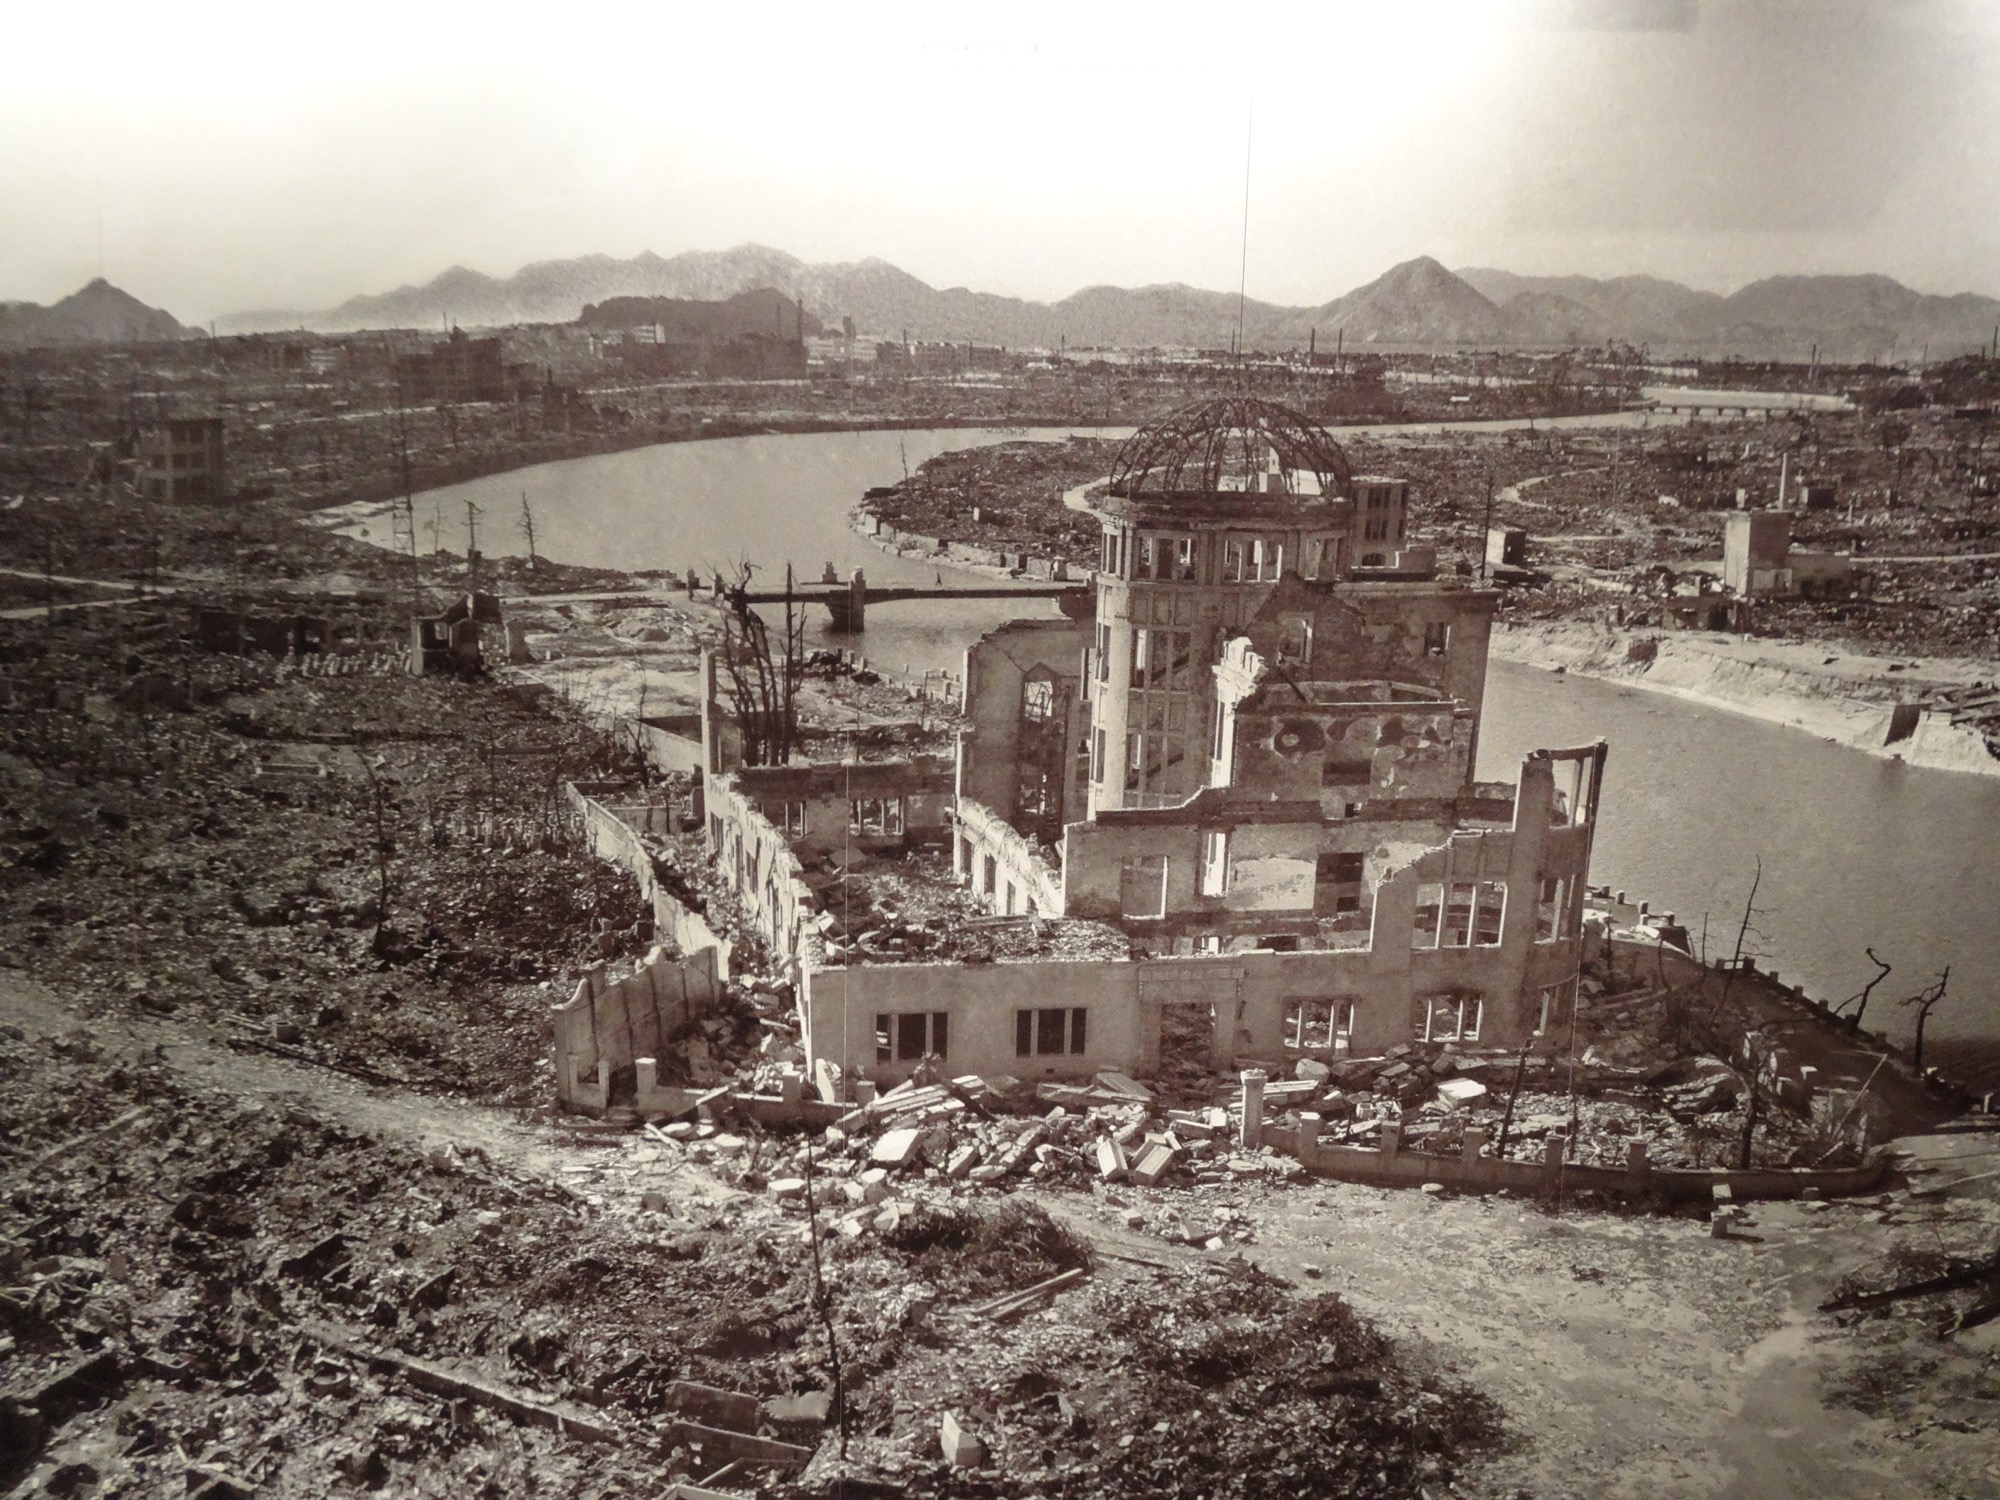 Picture of Hiroshima from 1945 after the atomic bomb.